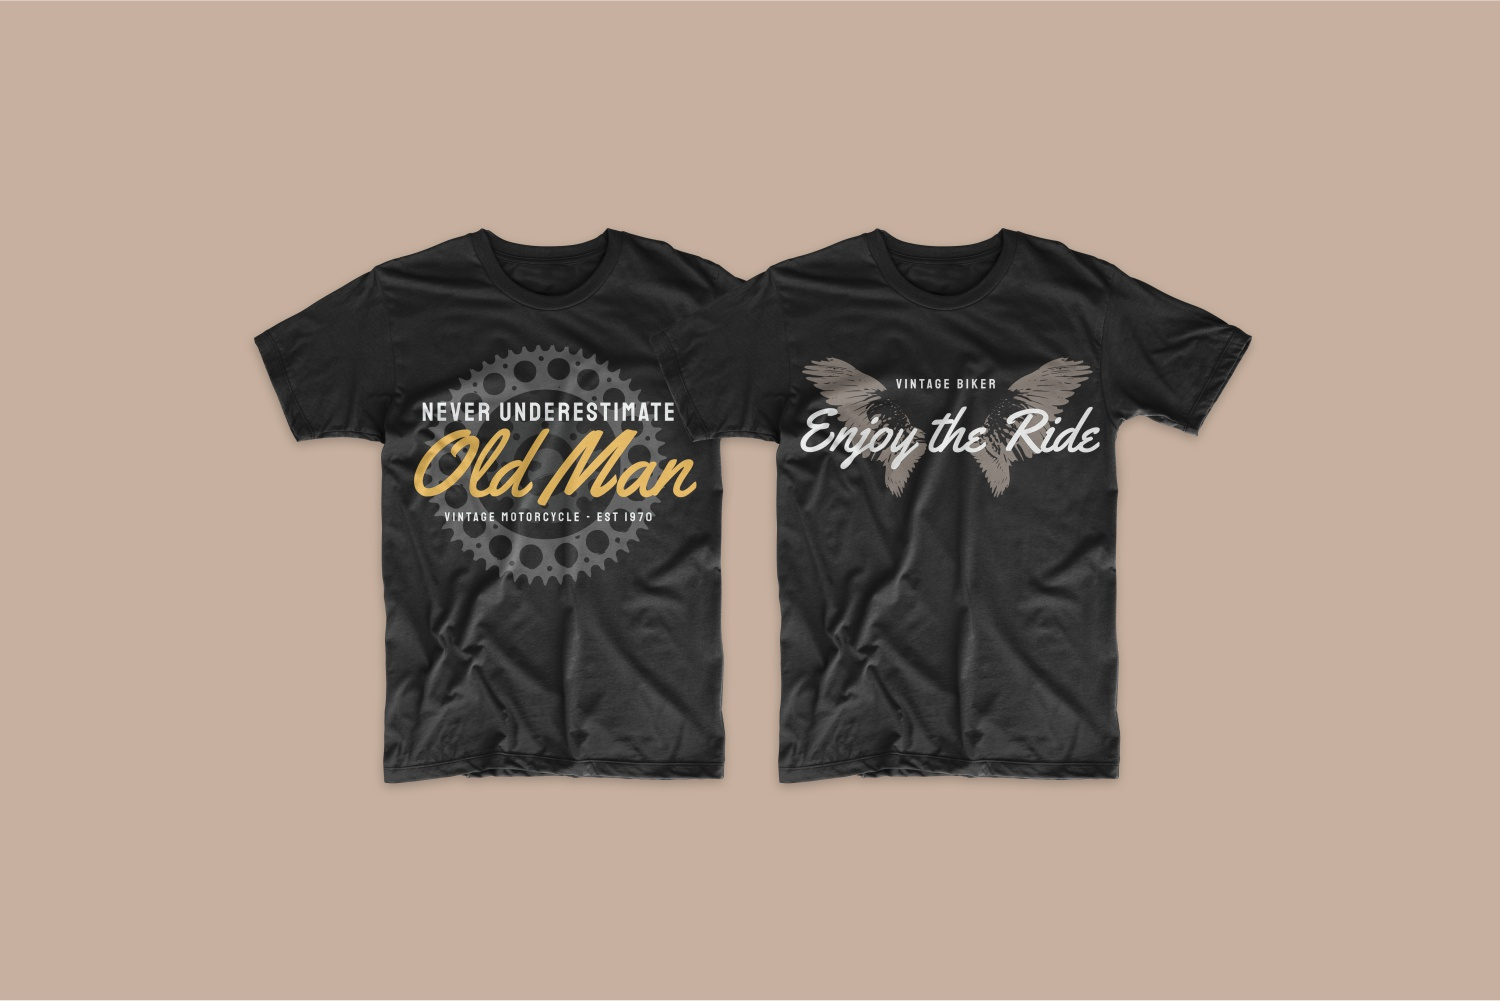 Two black T-shirts in vintage style with the image of the wings.